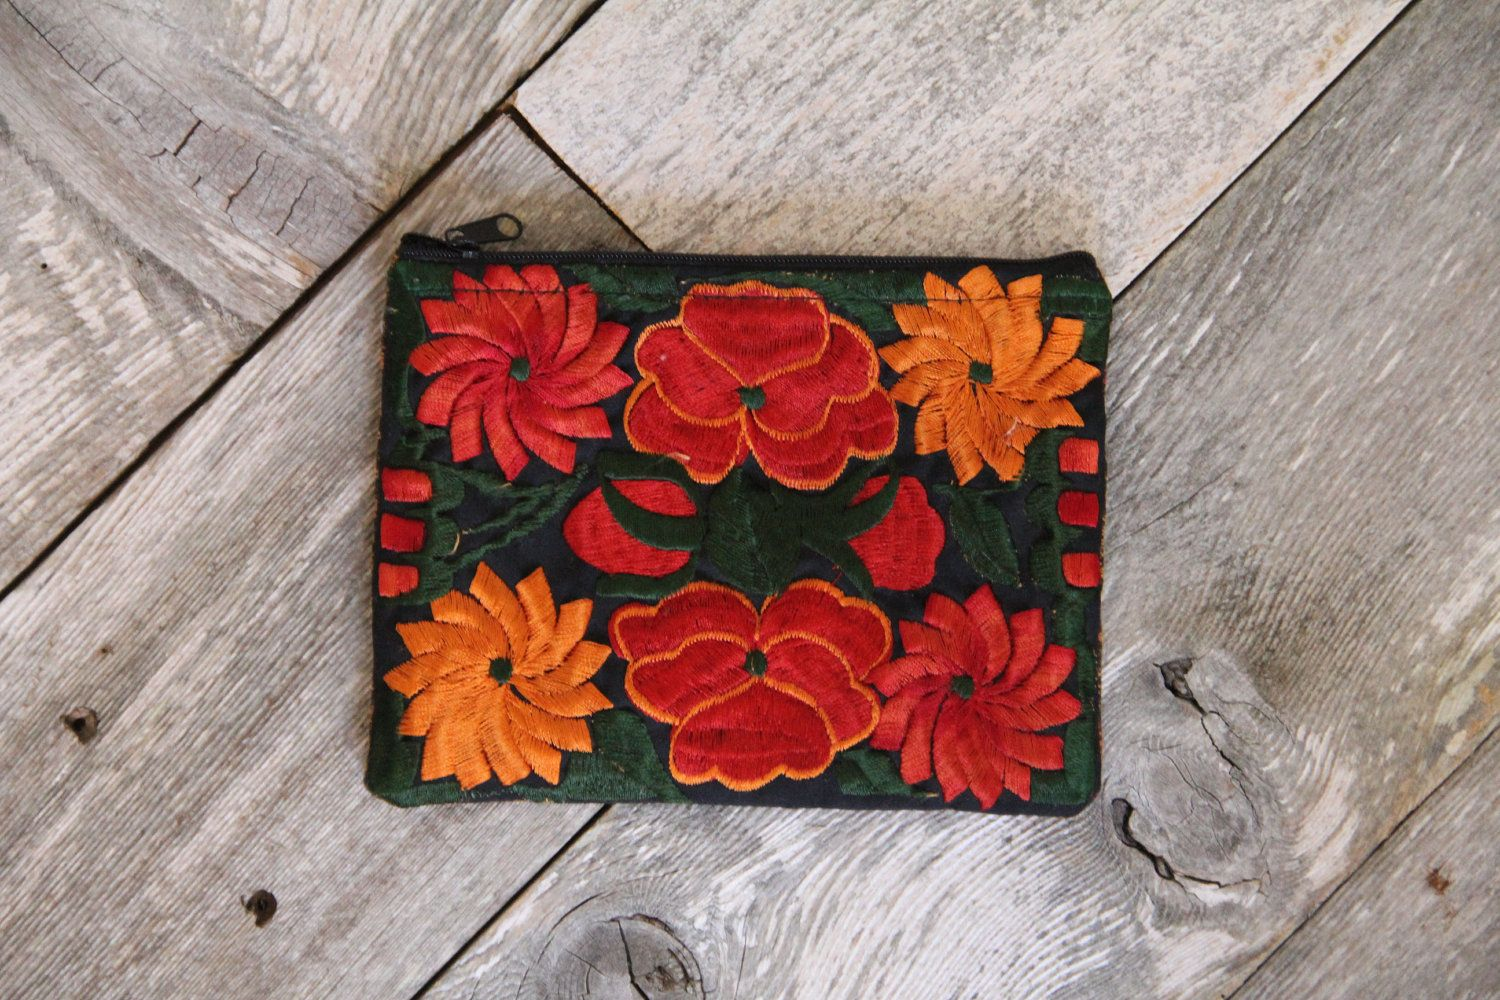 Vintage Floral Embrodery Coin Purse.